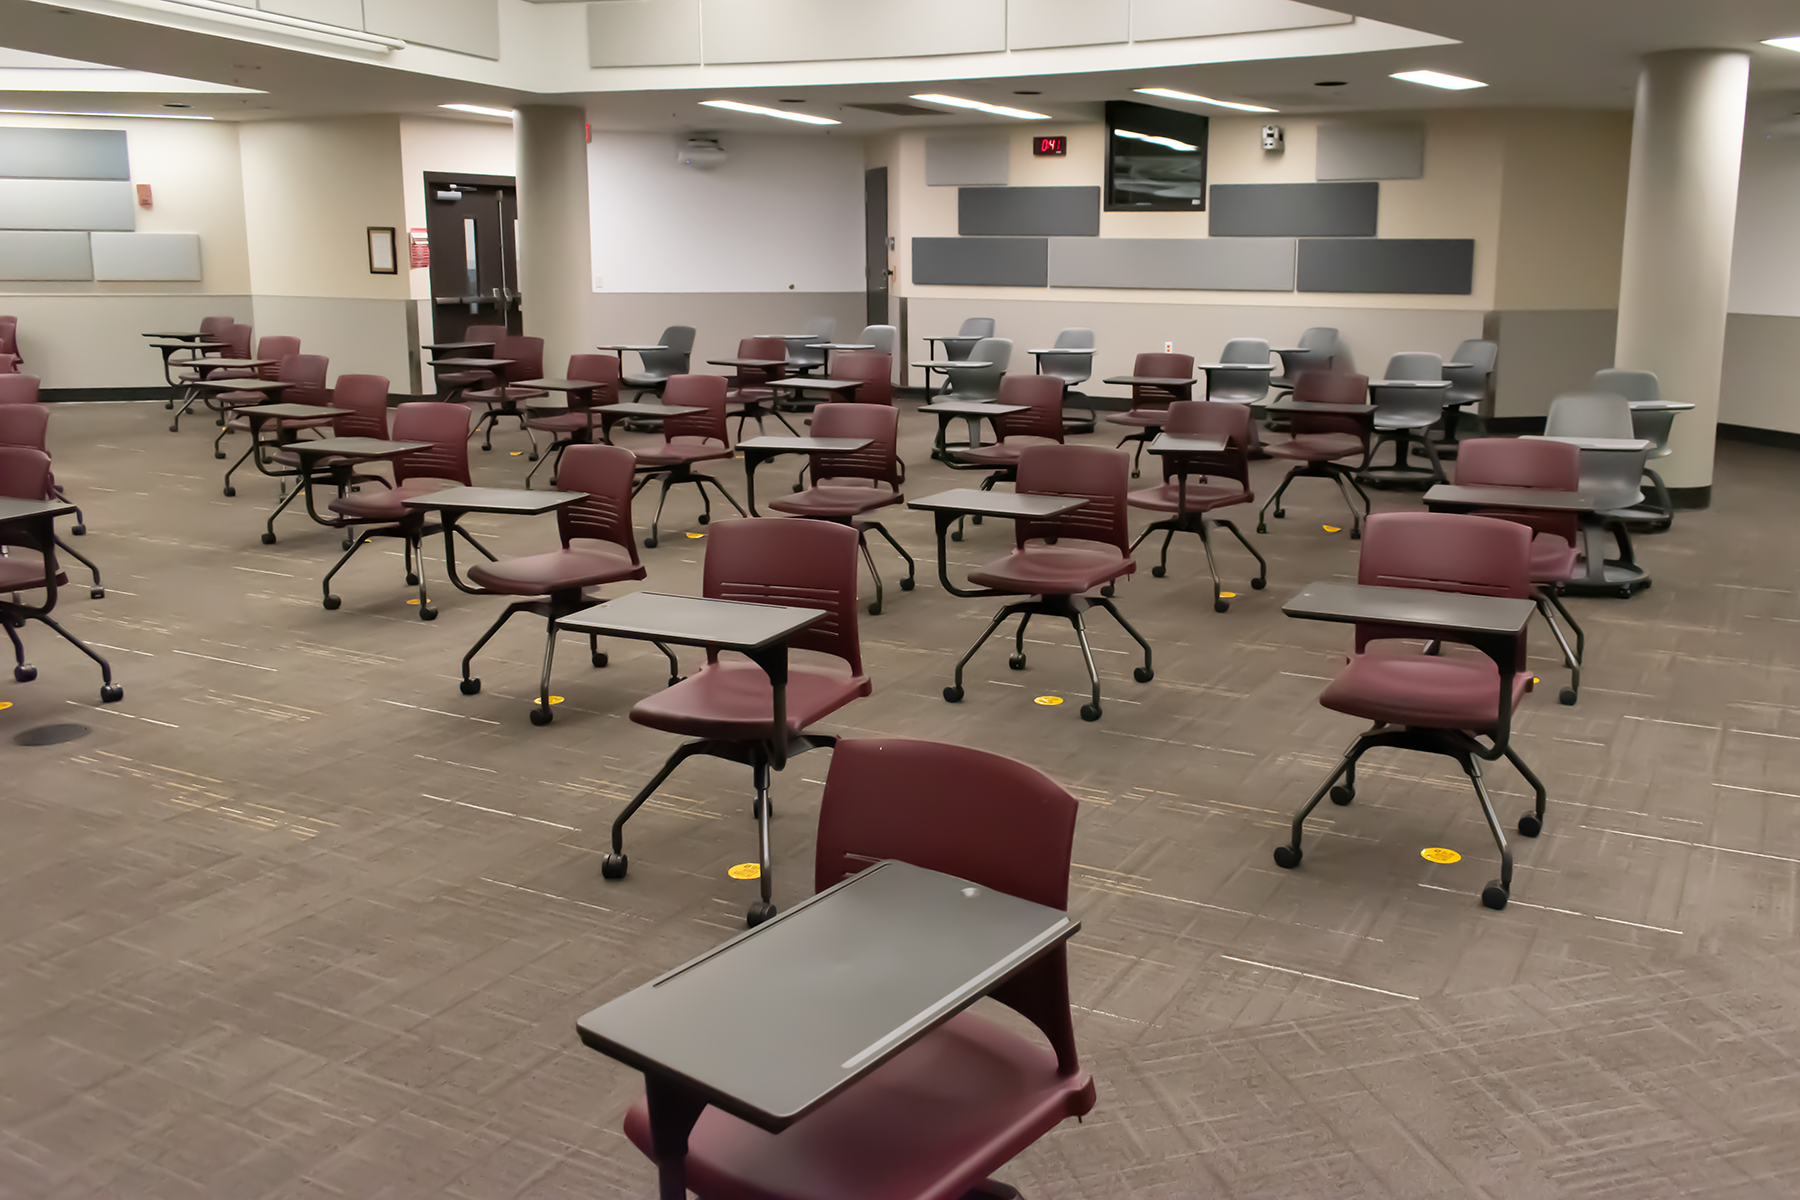 Recommendations from the CDC regarding modified layouts include spacing seating at least 6 feet apart when feasible. Credit: Image courtesy of TLC Engineering Solutions